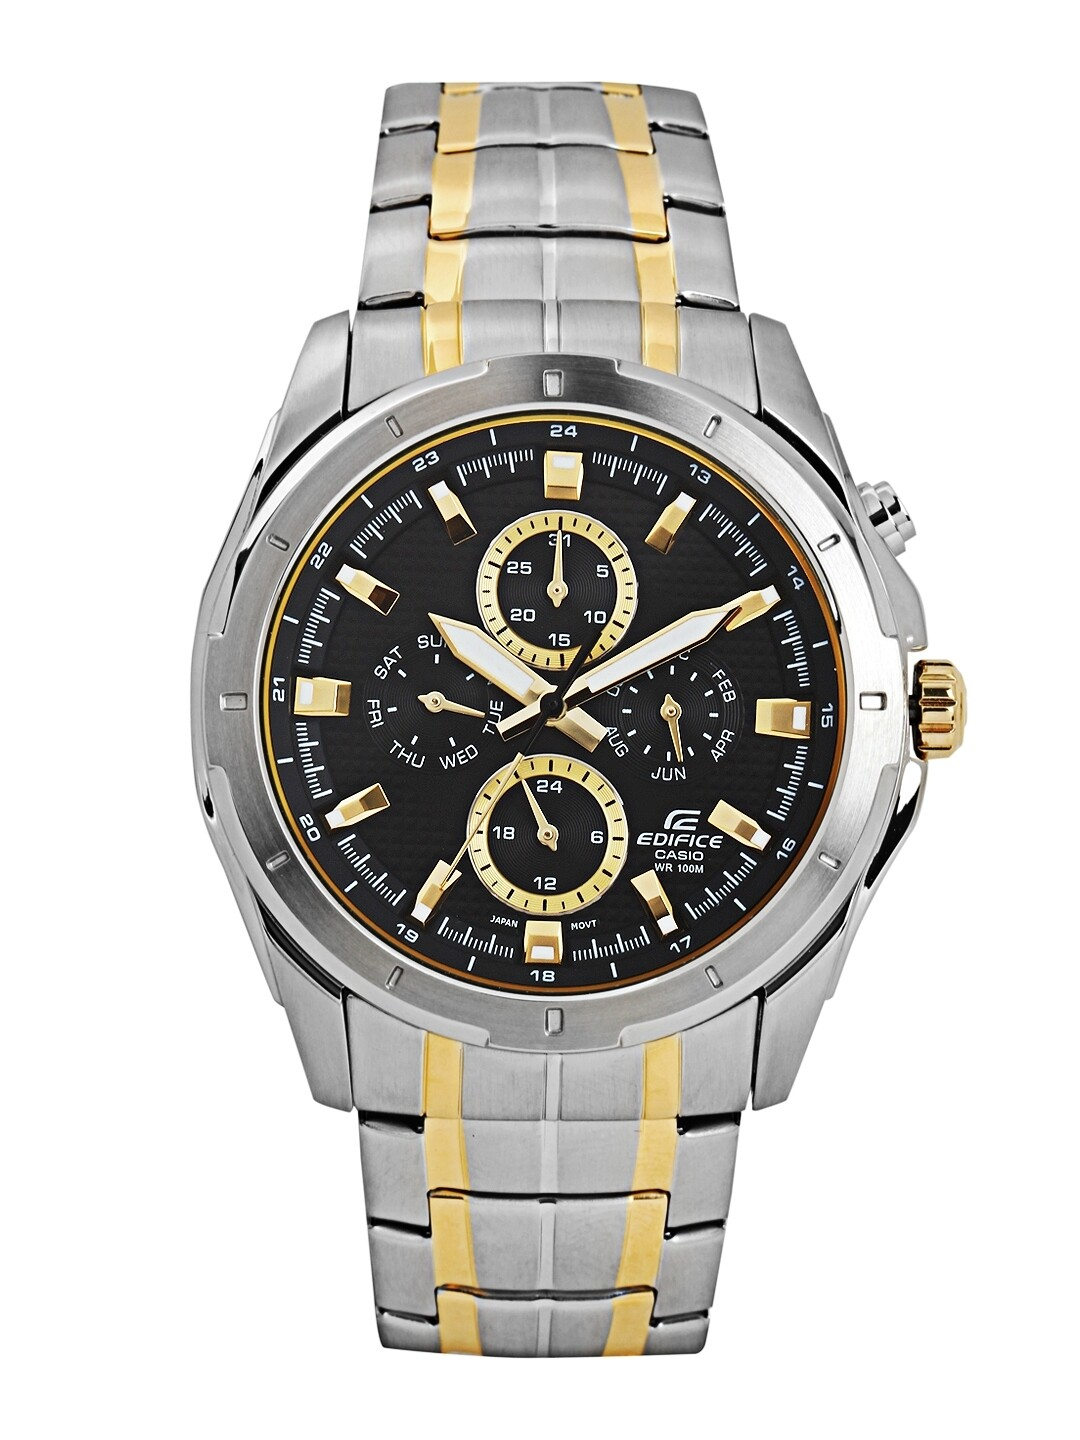 Casio Edifice EF-328SG-1AVDF Analog Wrist Watch For Men - Silver and Gold